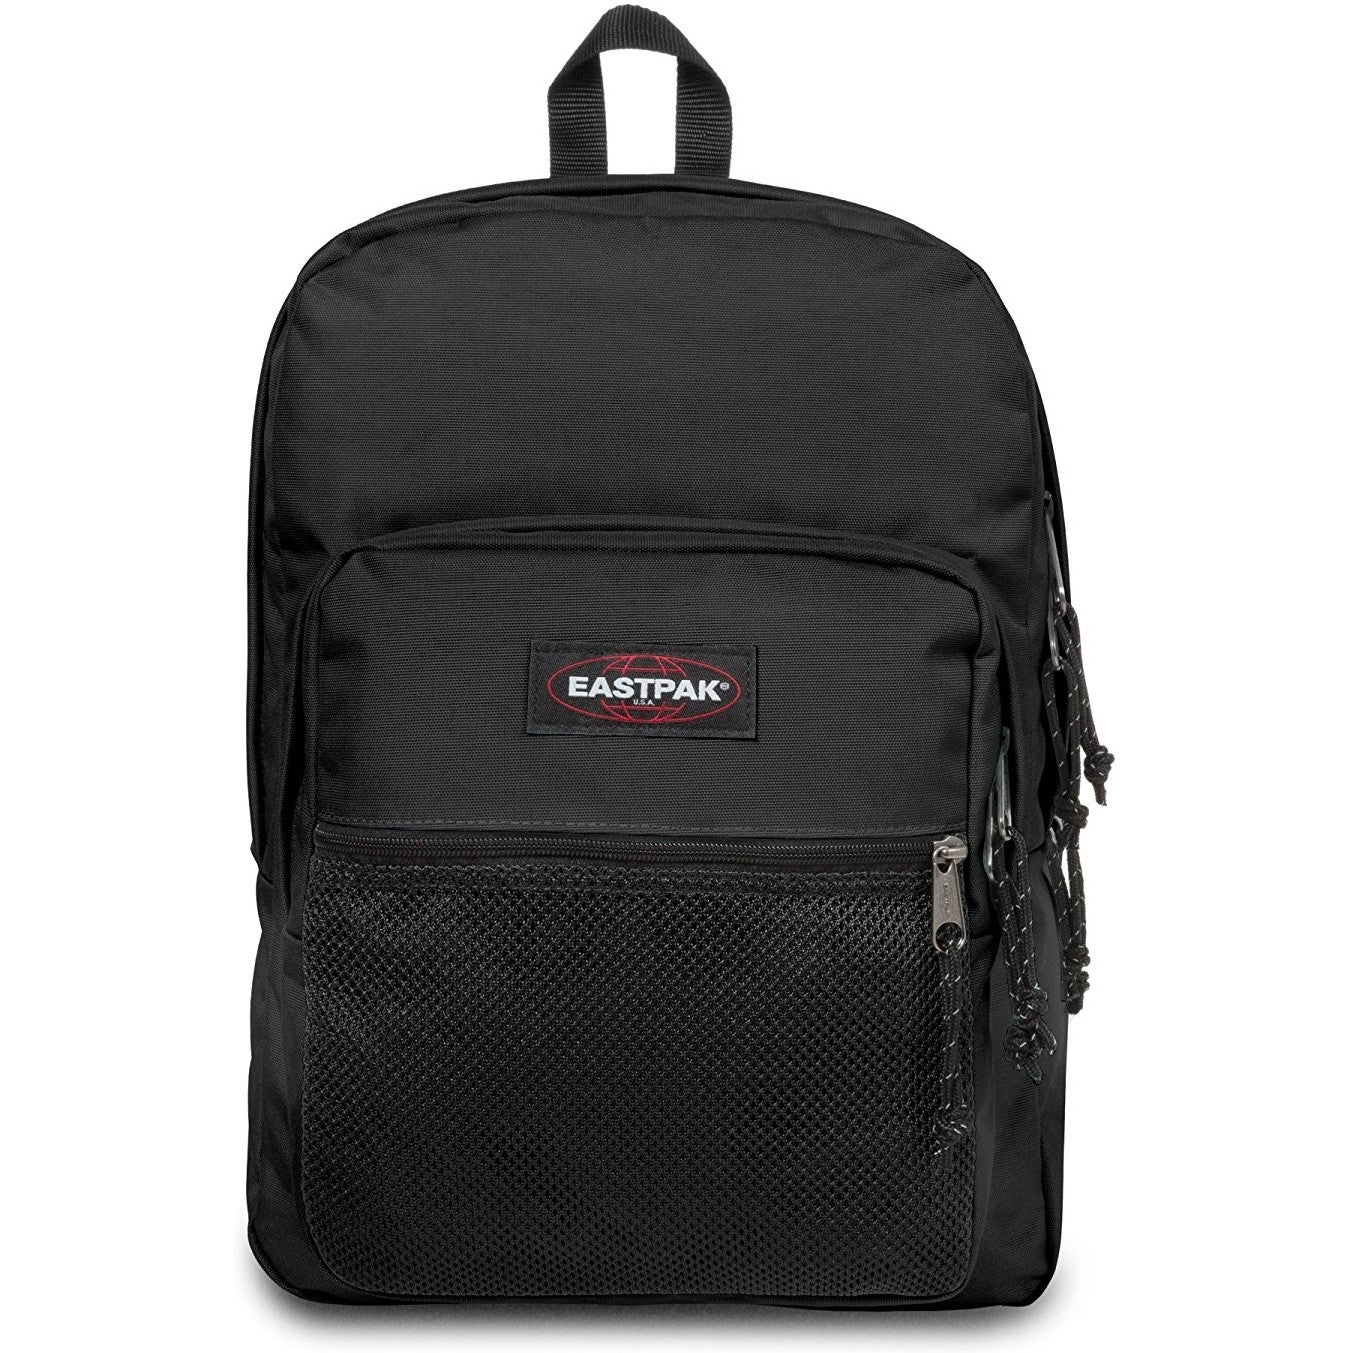 Mochilas Eastpak Pinnacle